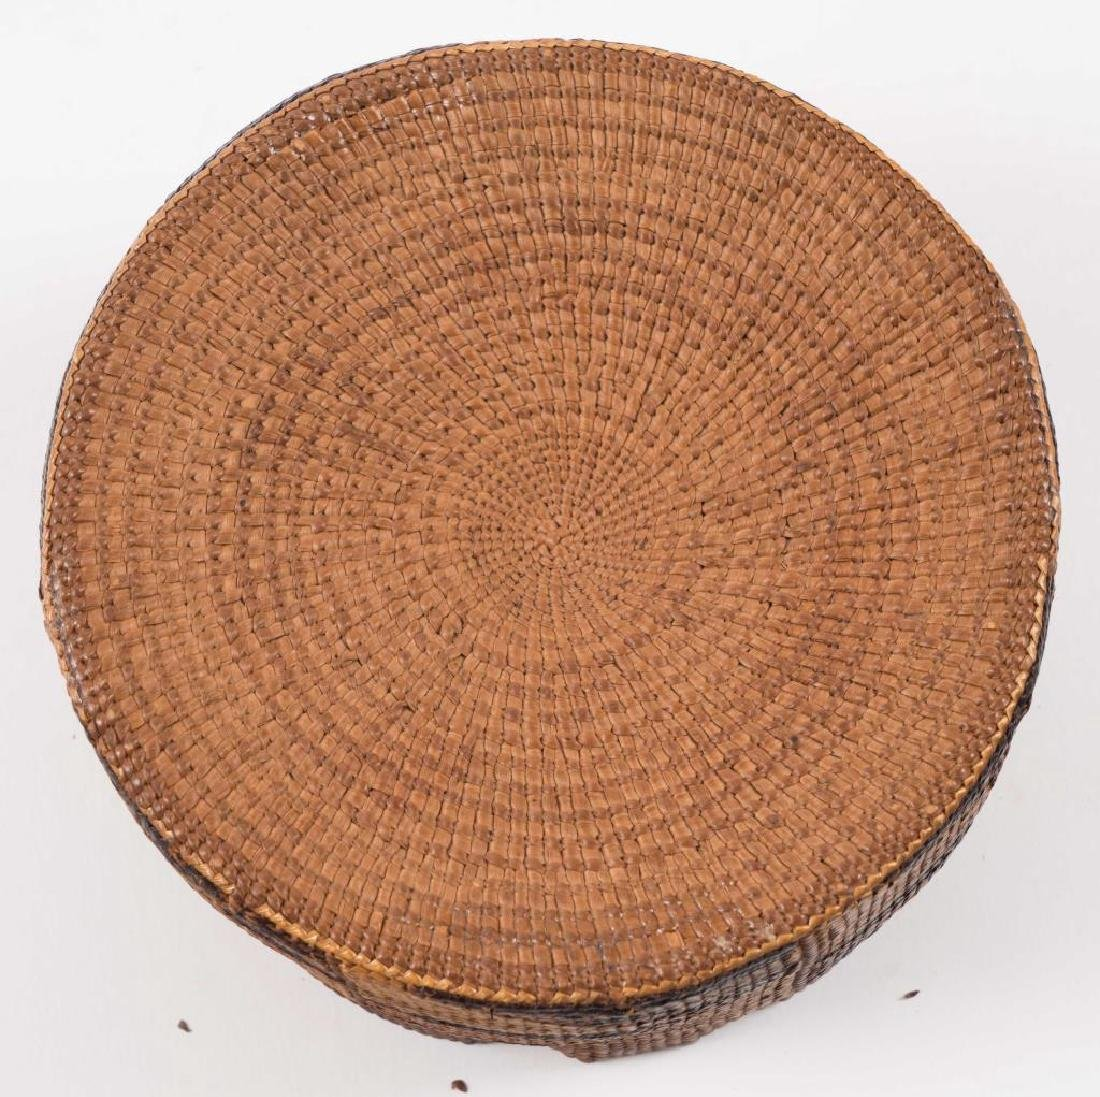 (2) FINELY WOVEN NATIVE AMERICAN COVERED BASKETS - 2